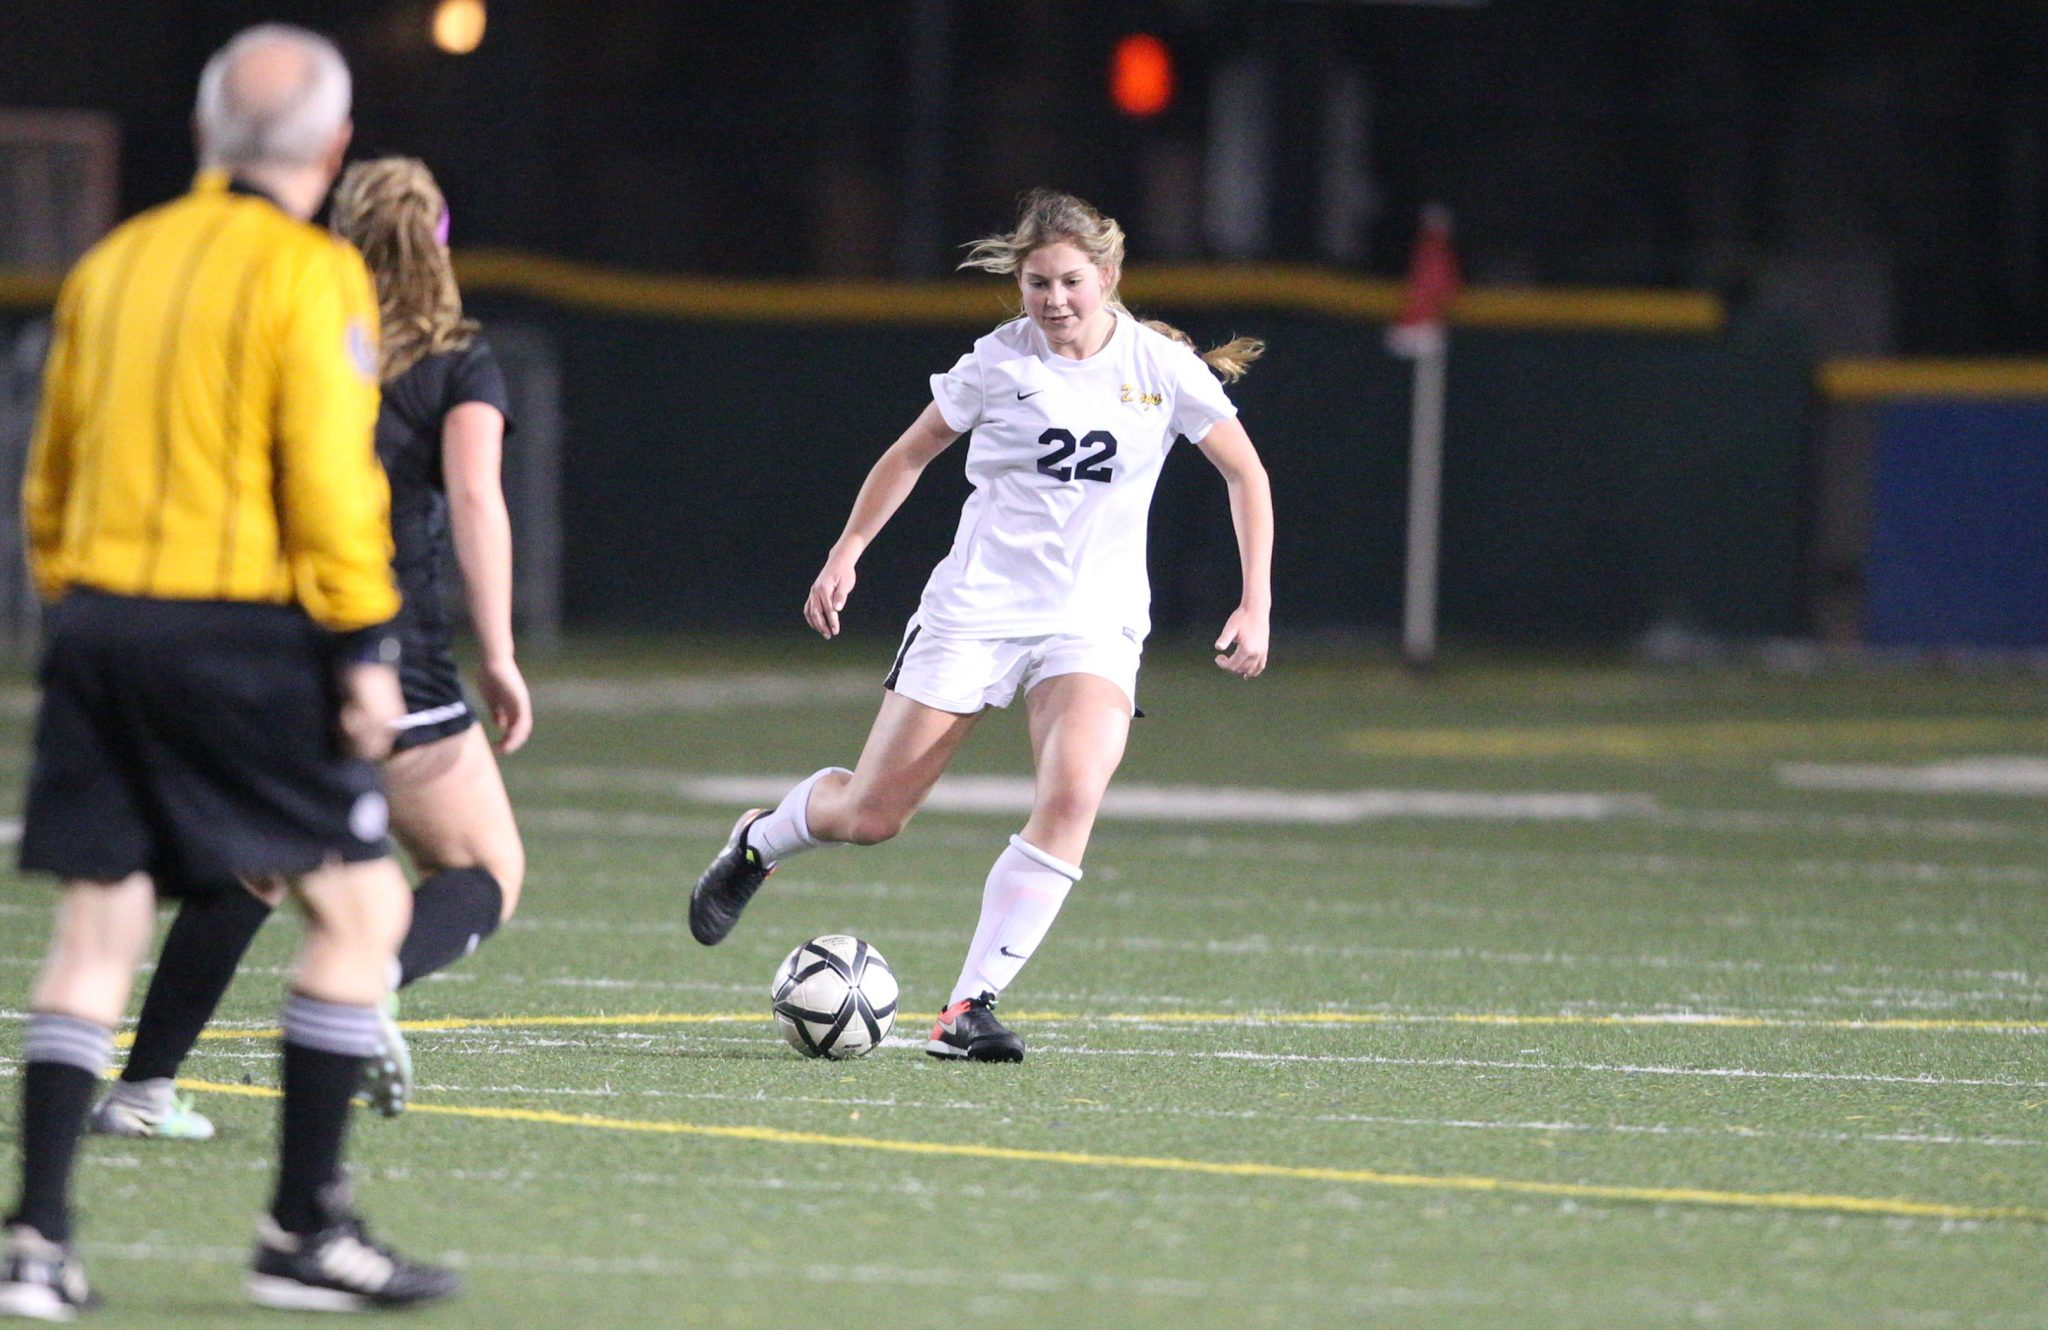 Alhambra junior Jenna Coffman (22) and the rest of the Bulldog defense held resolute and kept the Novato Hornets off the score board in their 2-0 win in the first round of the North Coast Section playoffs on Feb. 15, 2017. (MARK FIERNER / Martinez Tribune)